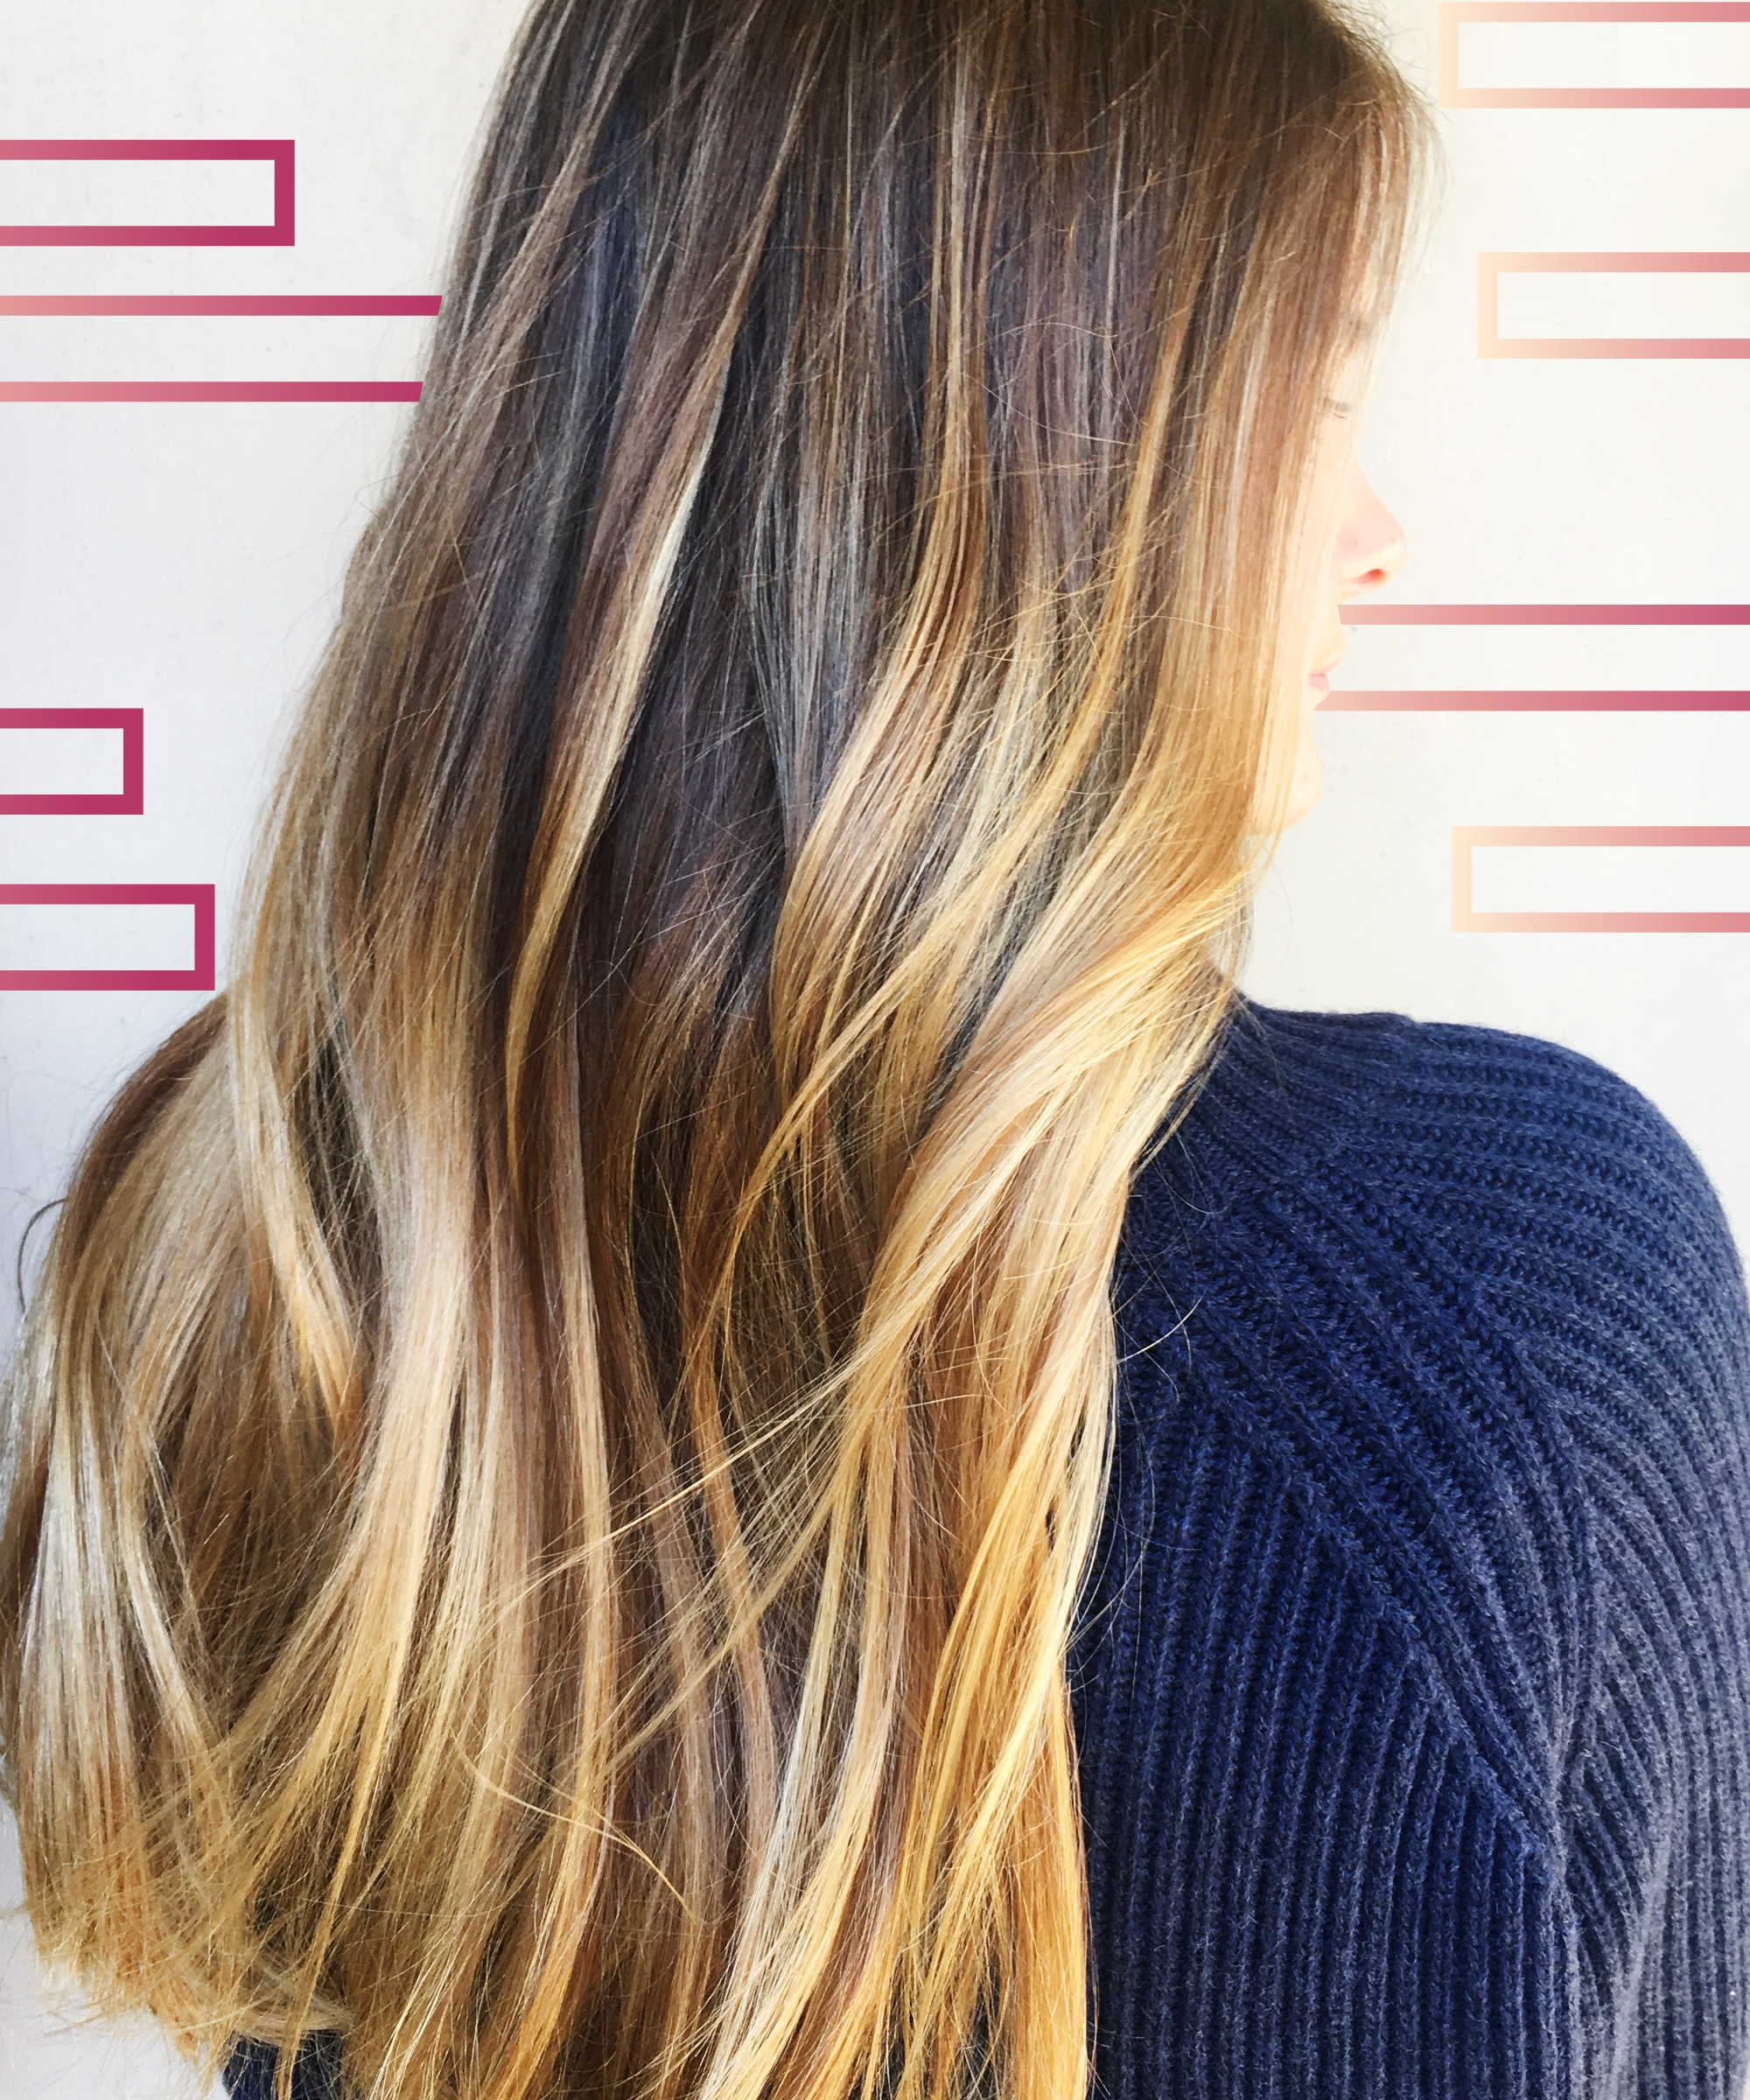 20 Inspirations Of Root Fade Into Blonde Hairstyles